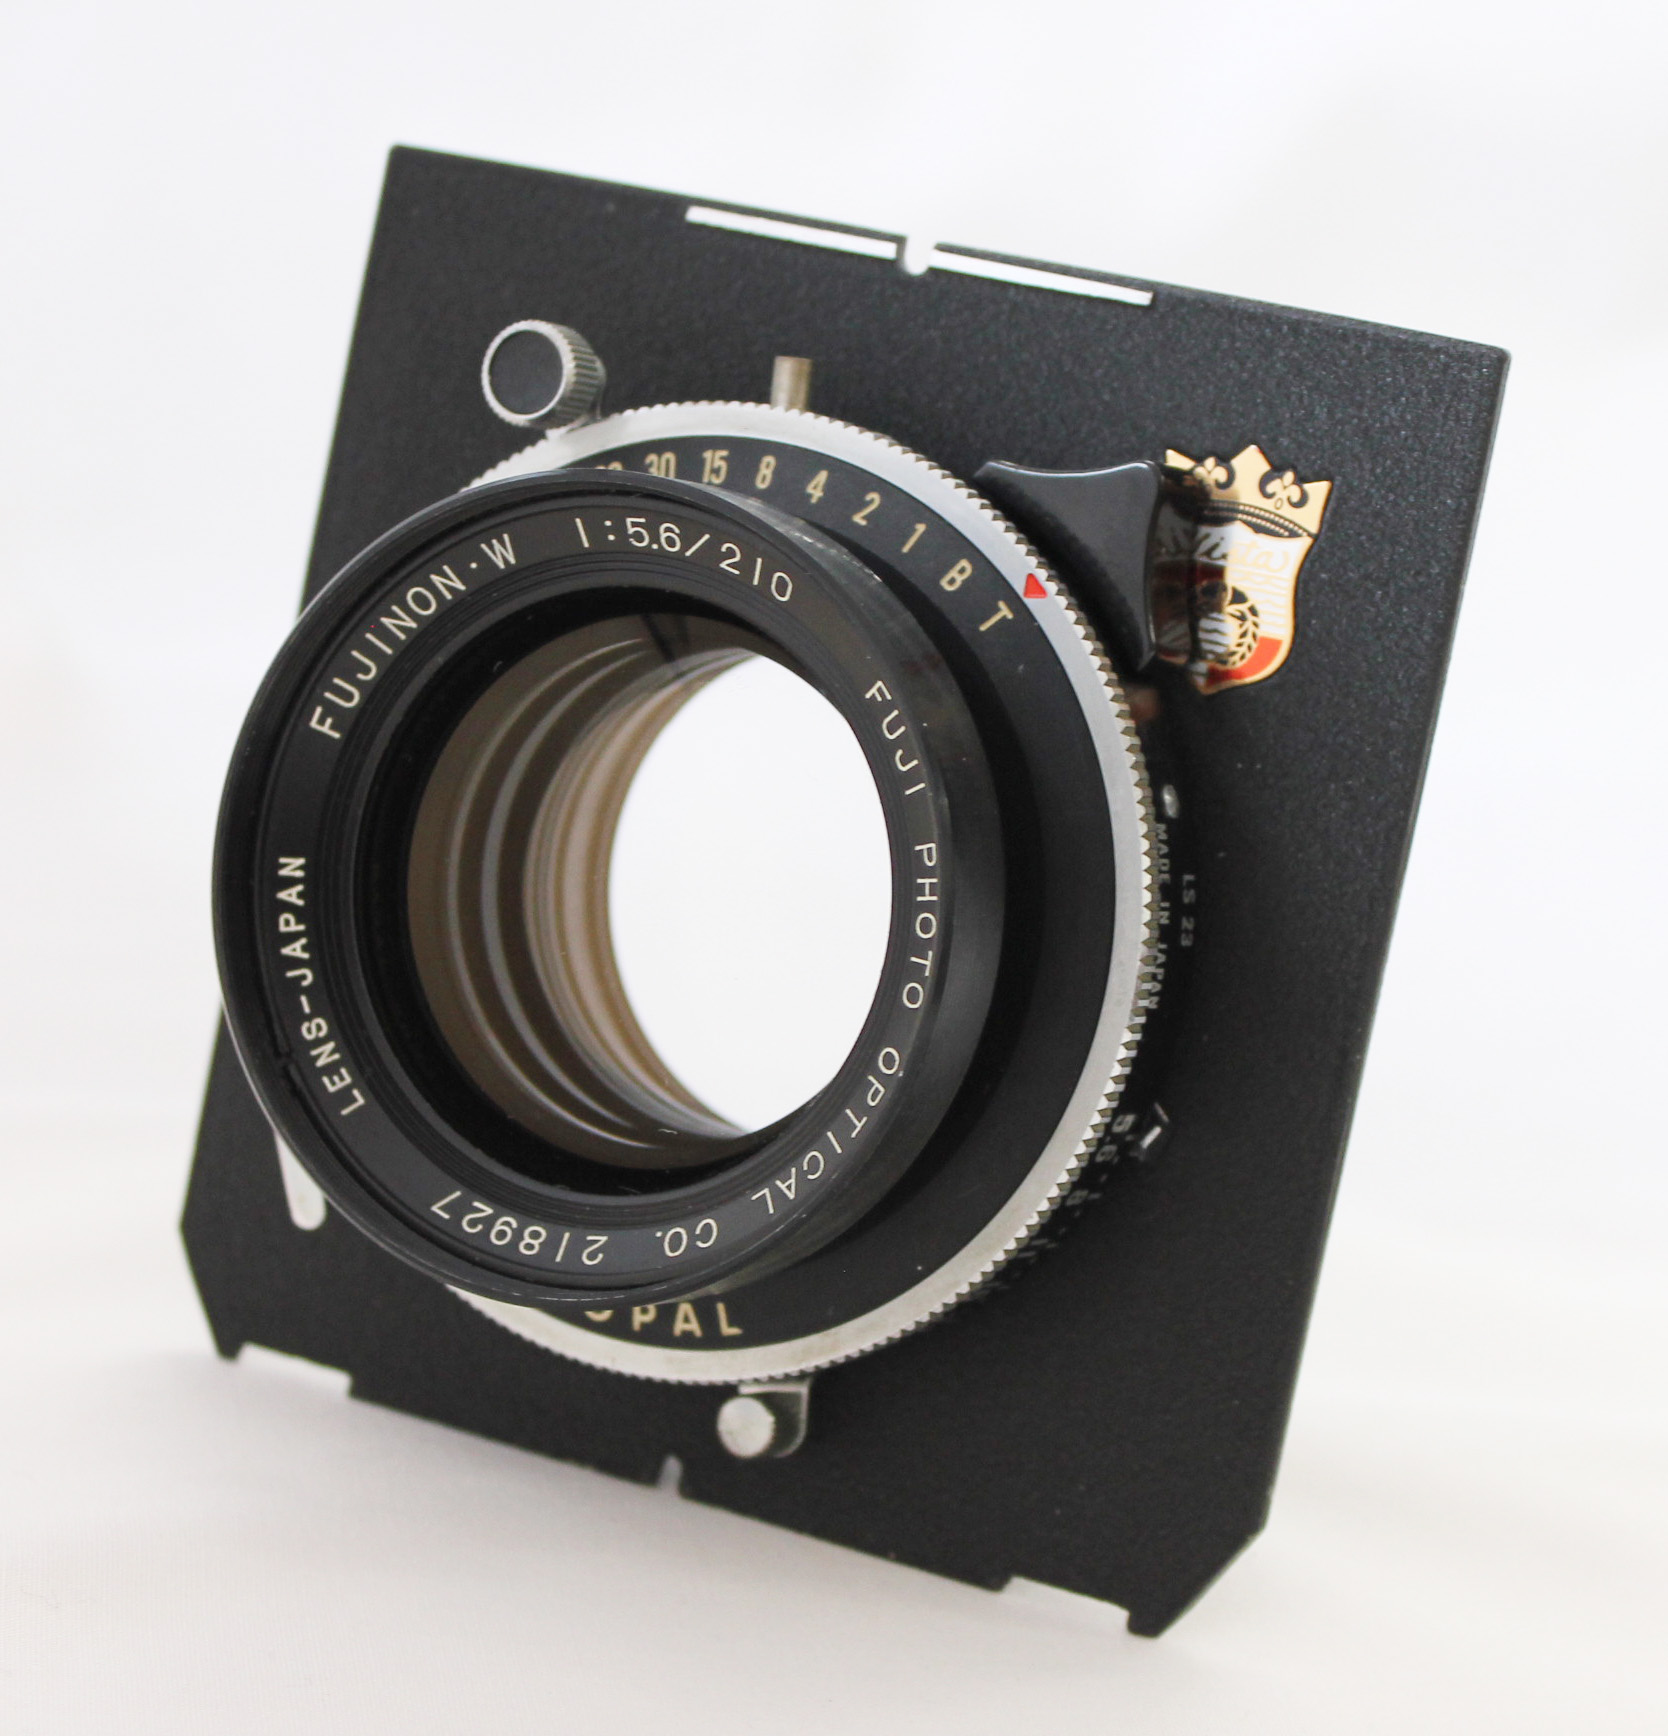 Japan Used Camera Shop | [Exc++++] Fuji Fujinon W 210mm F/5.6 4x5 Large Format Lens with Copal Shutter from Japan